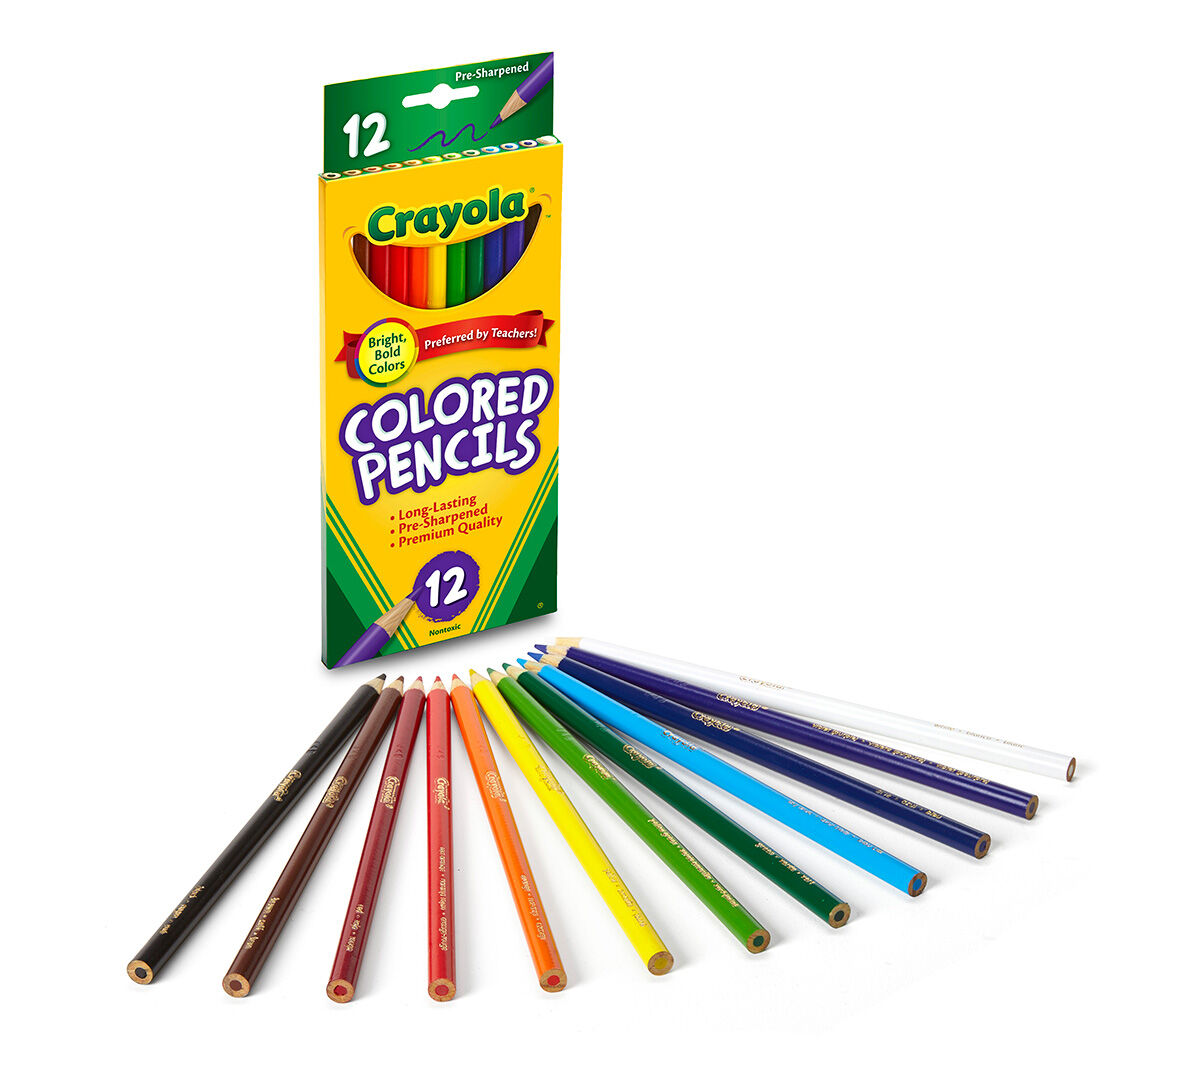 Crayola Colored Pencils Assorted Colors Presharpened Adult